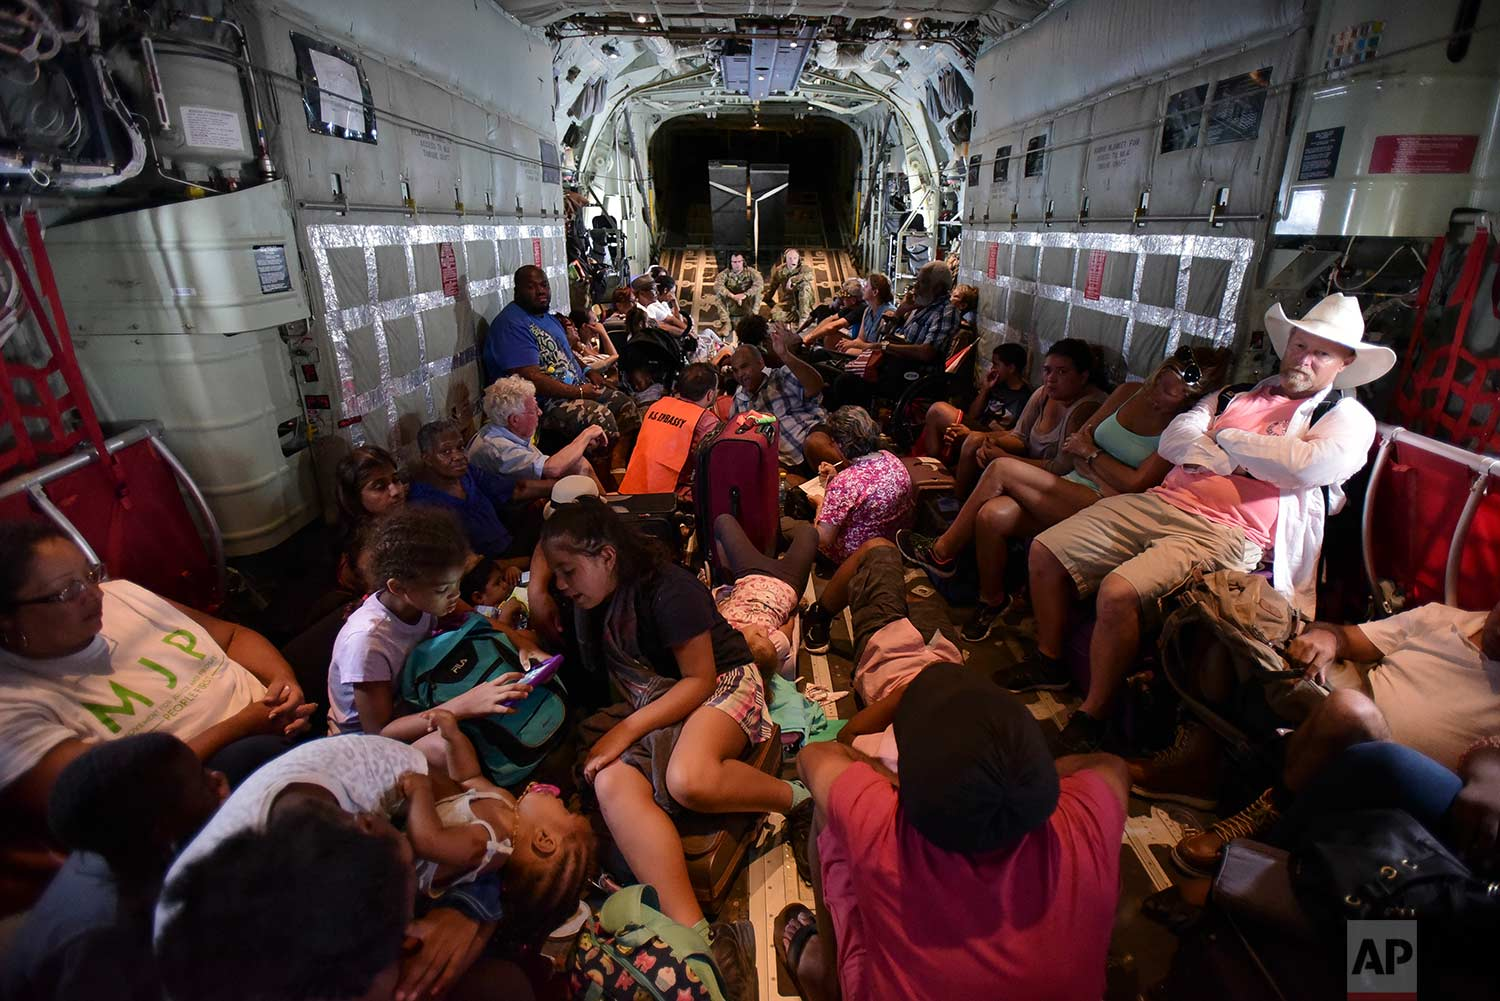 In this Tuesday, Sept. 12, 2017 photo, U.S. Air force personnel evacuate U.S. citizens from St. Martin, aboard an aircraft after the passage of Hurricane Irma. (AP Photo/Carlos Giusti)